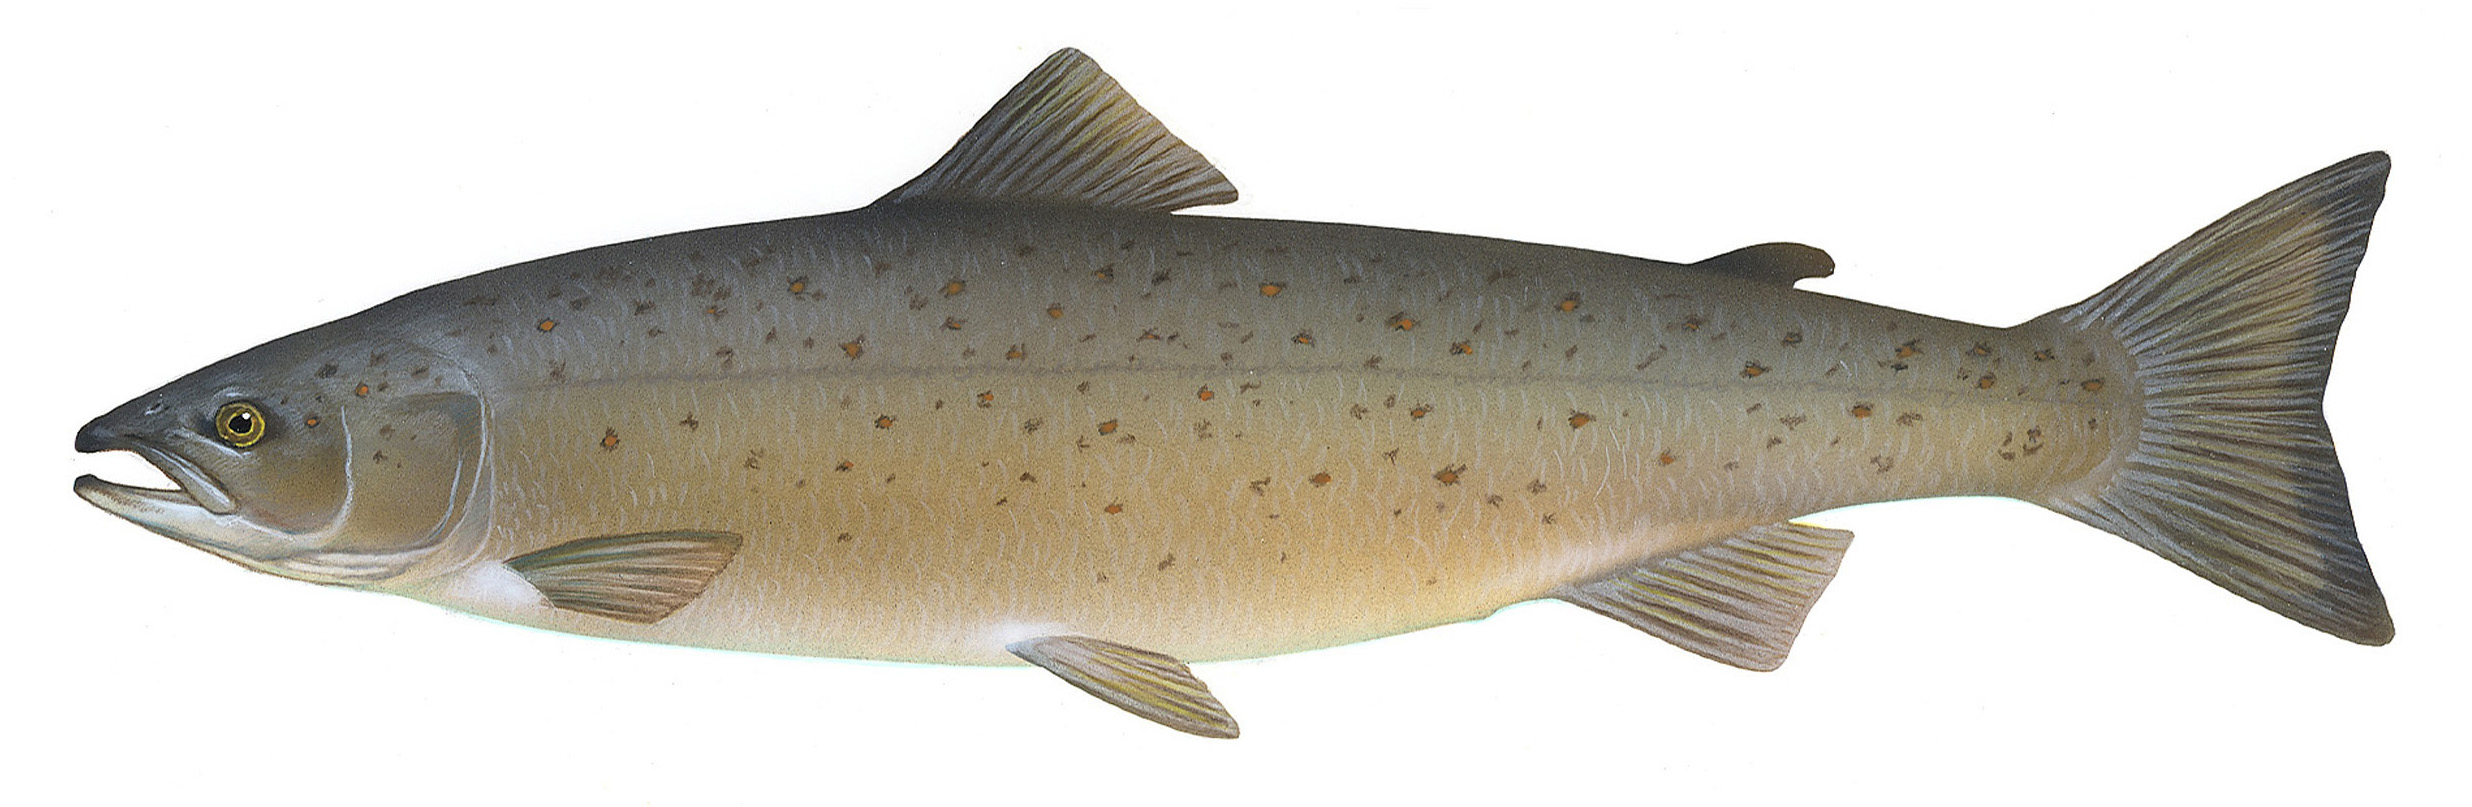 An Atlantic Salmon, the hero neuroscience needs. Picture taken from    Wikipedia   .